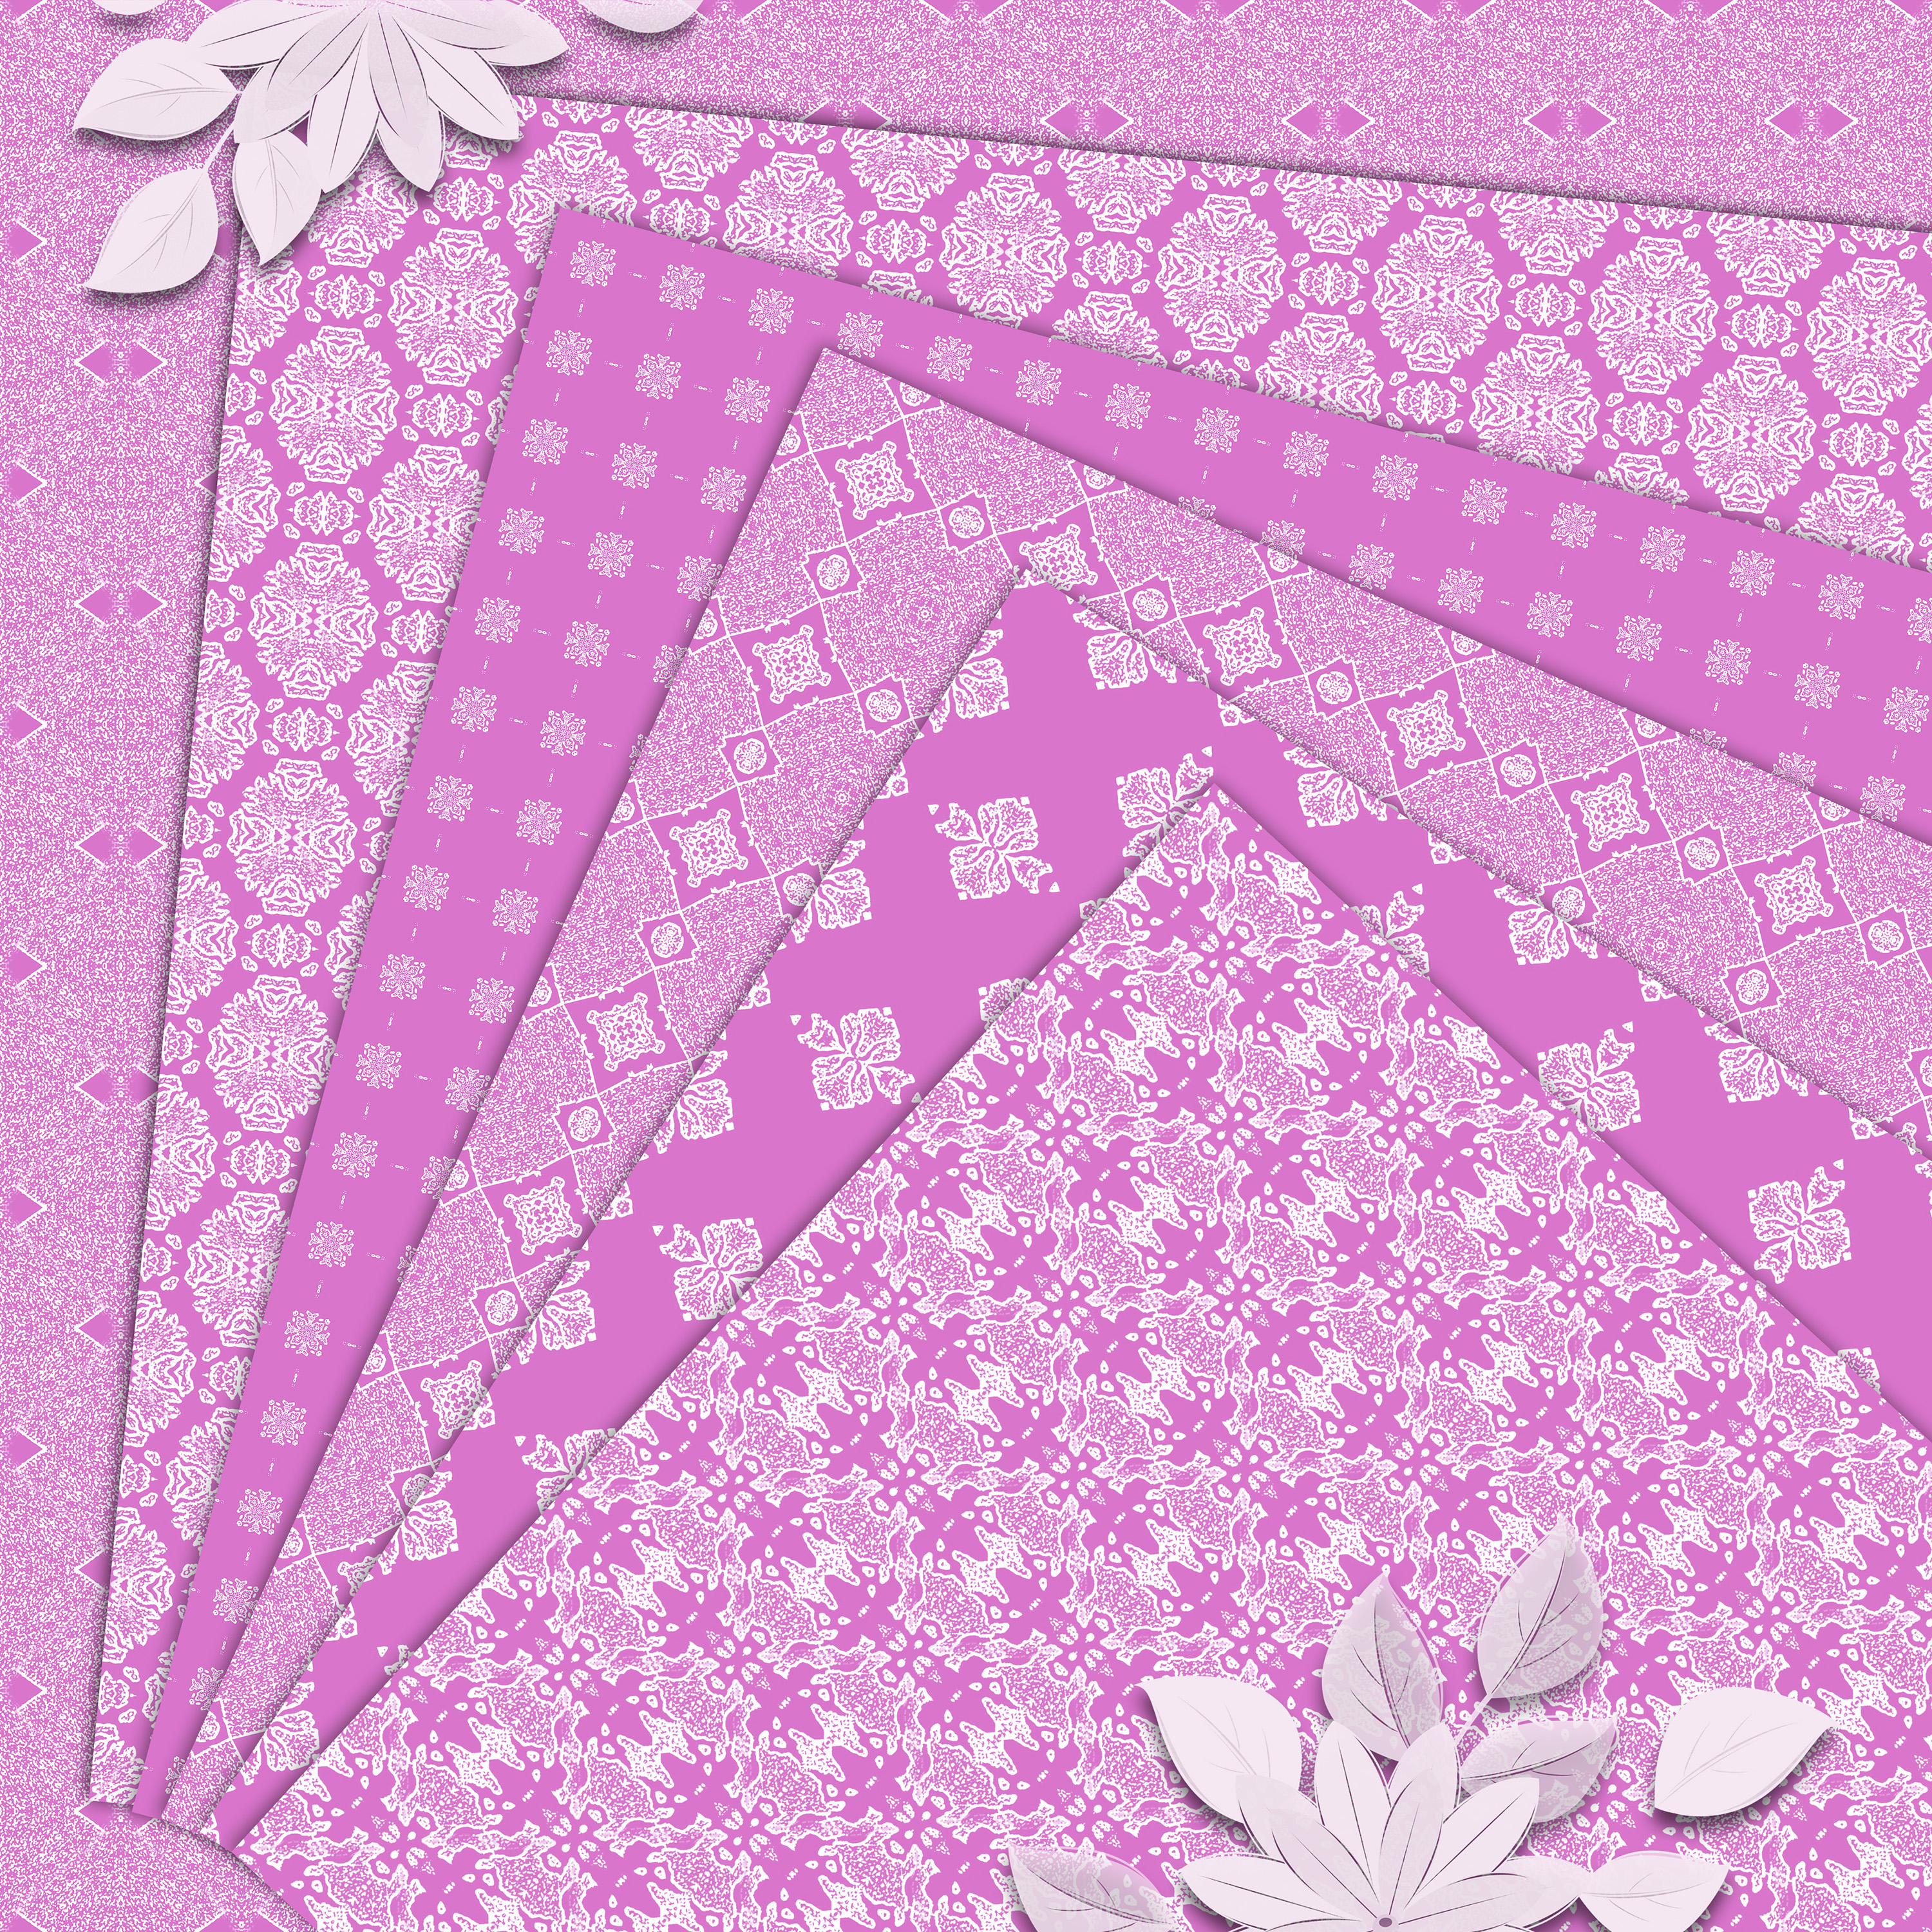 Pink, gentle, abstract and geometrical Scrapbook Paper example image 6